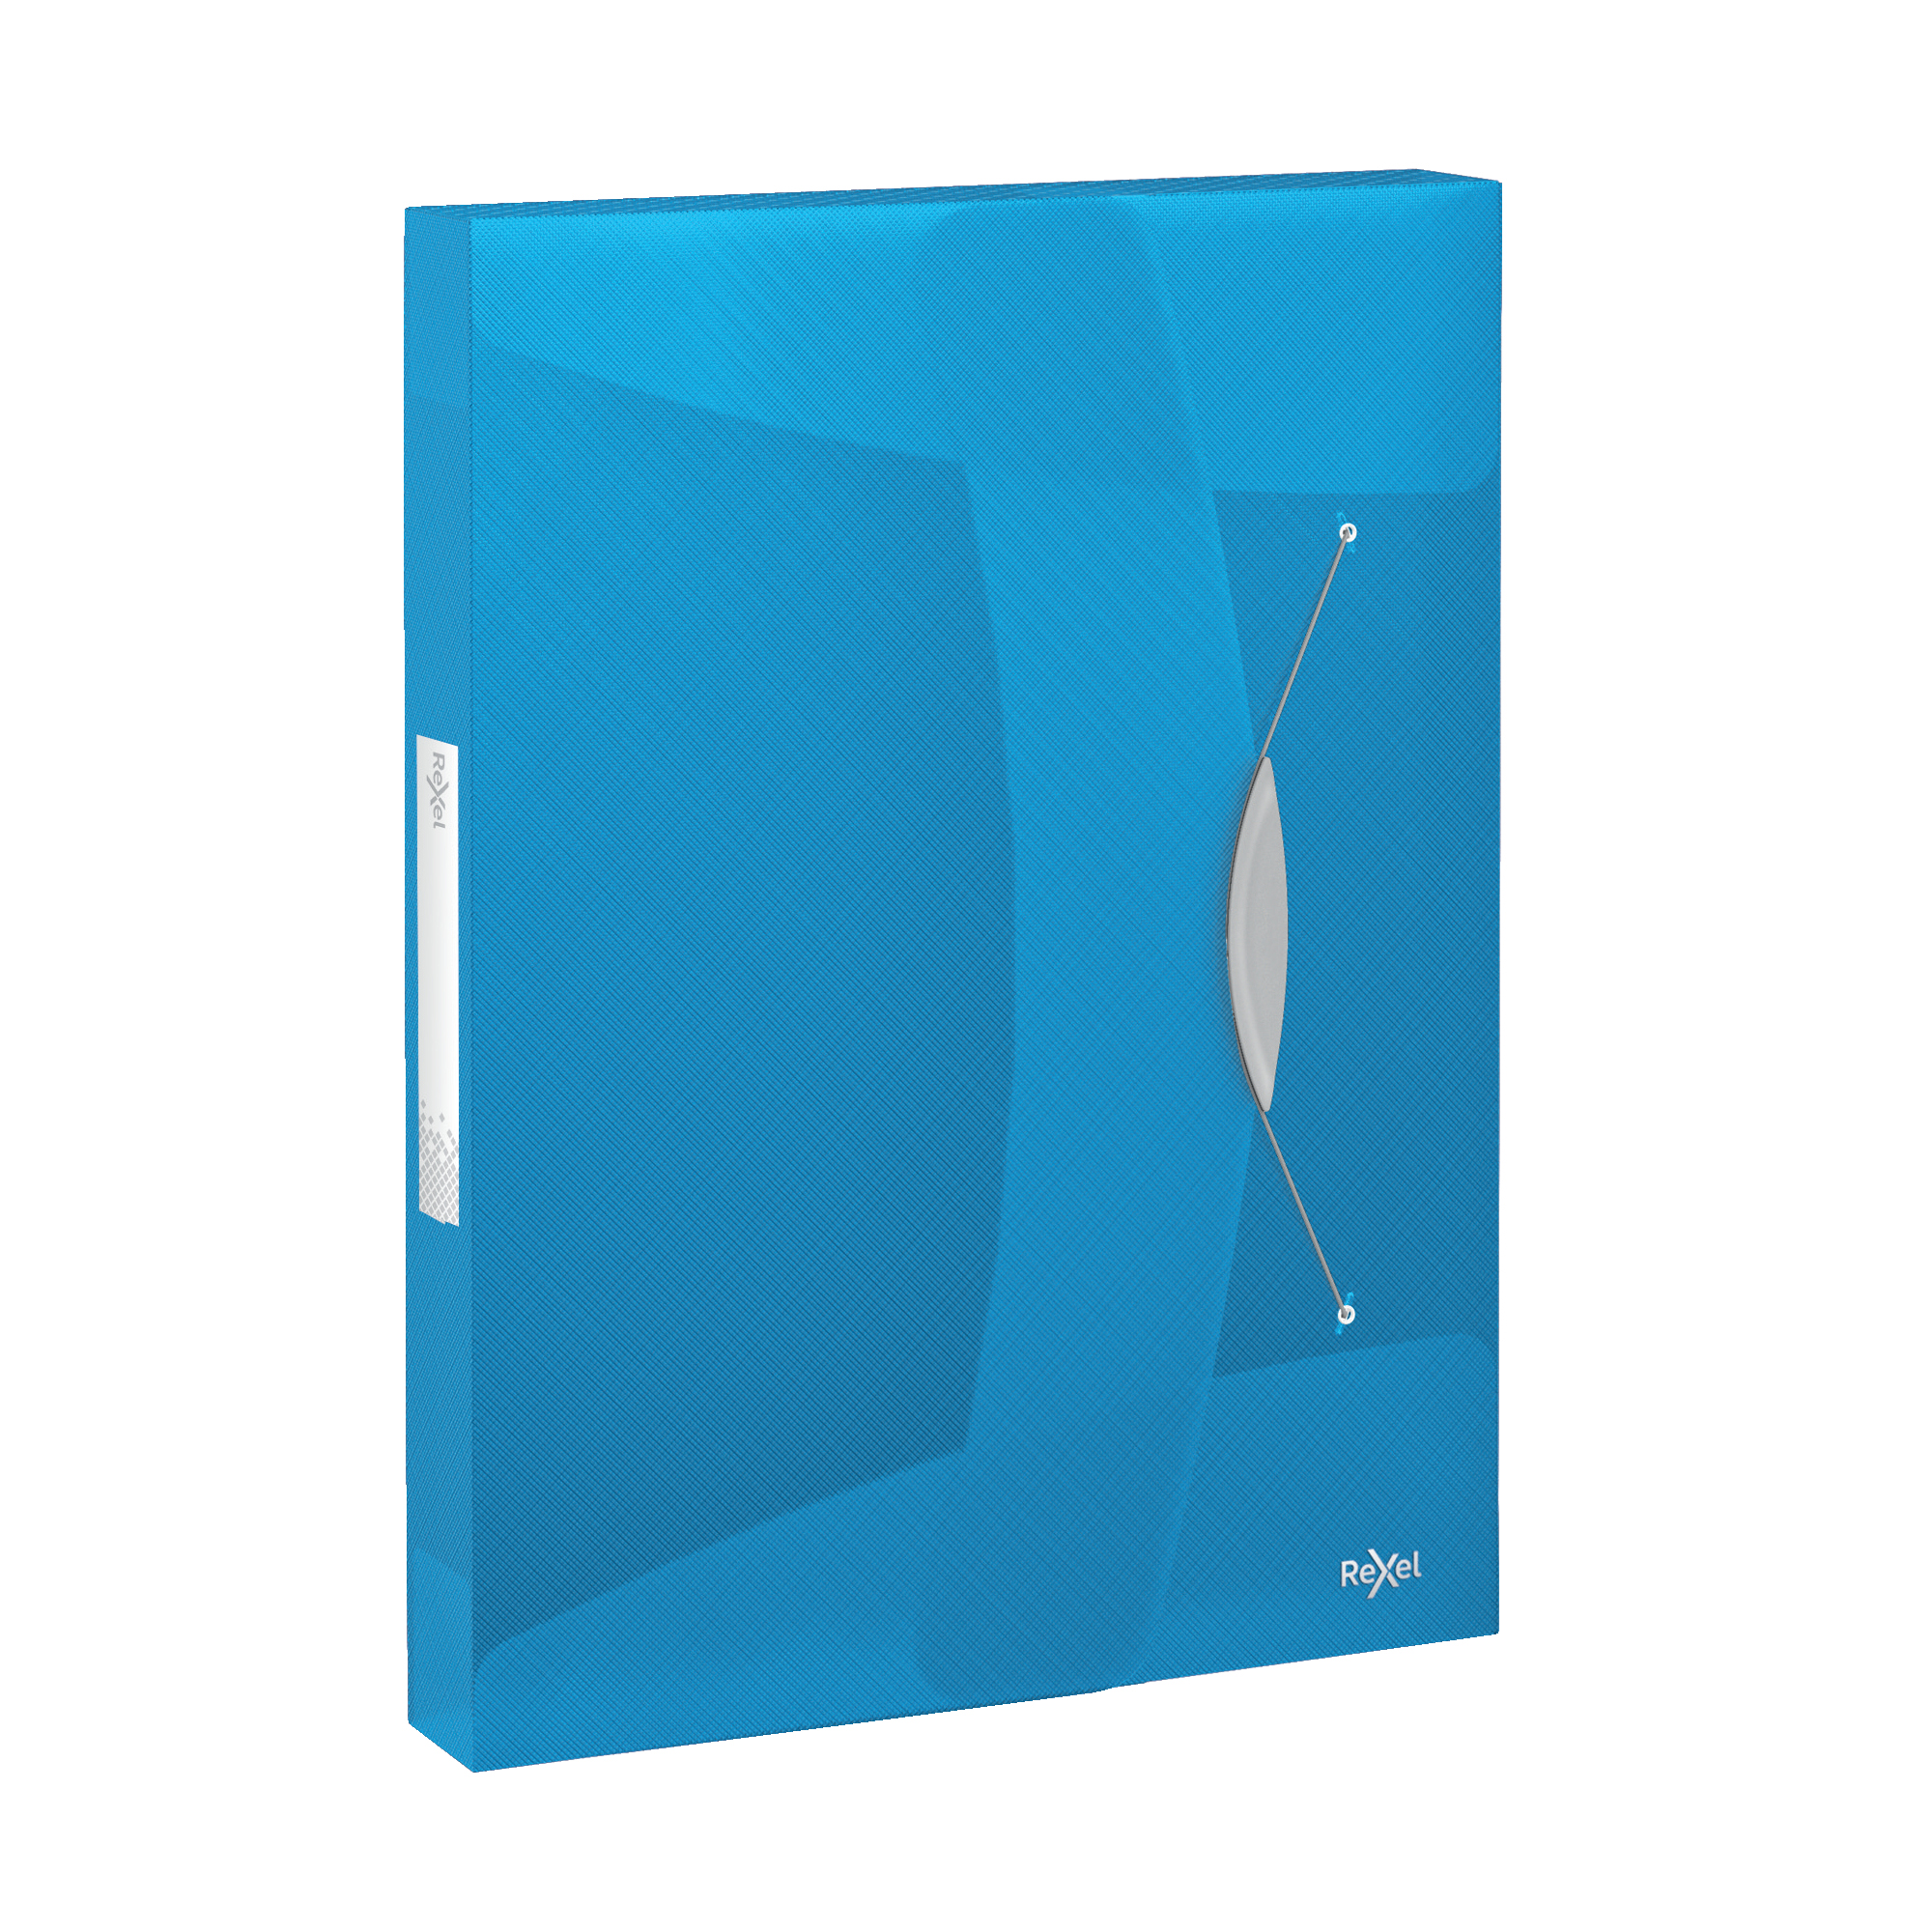 Rexel Choices Box File PP Elastic Strap 40mm Spine A4 Trans Blue Ref 2115667